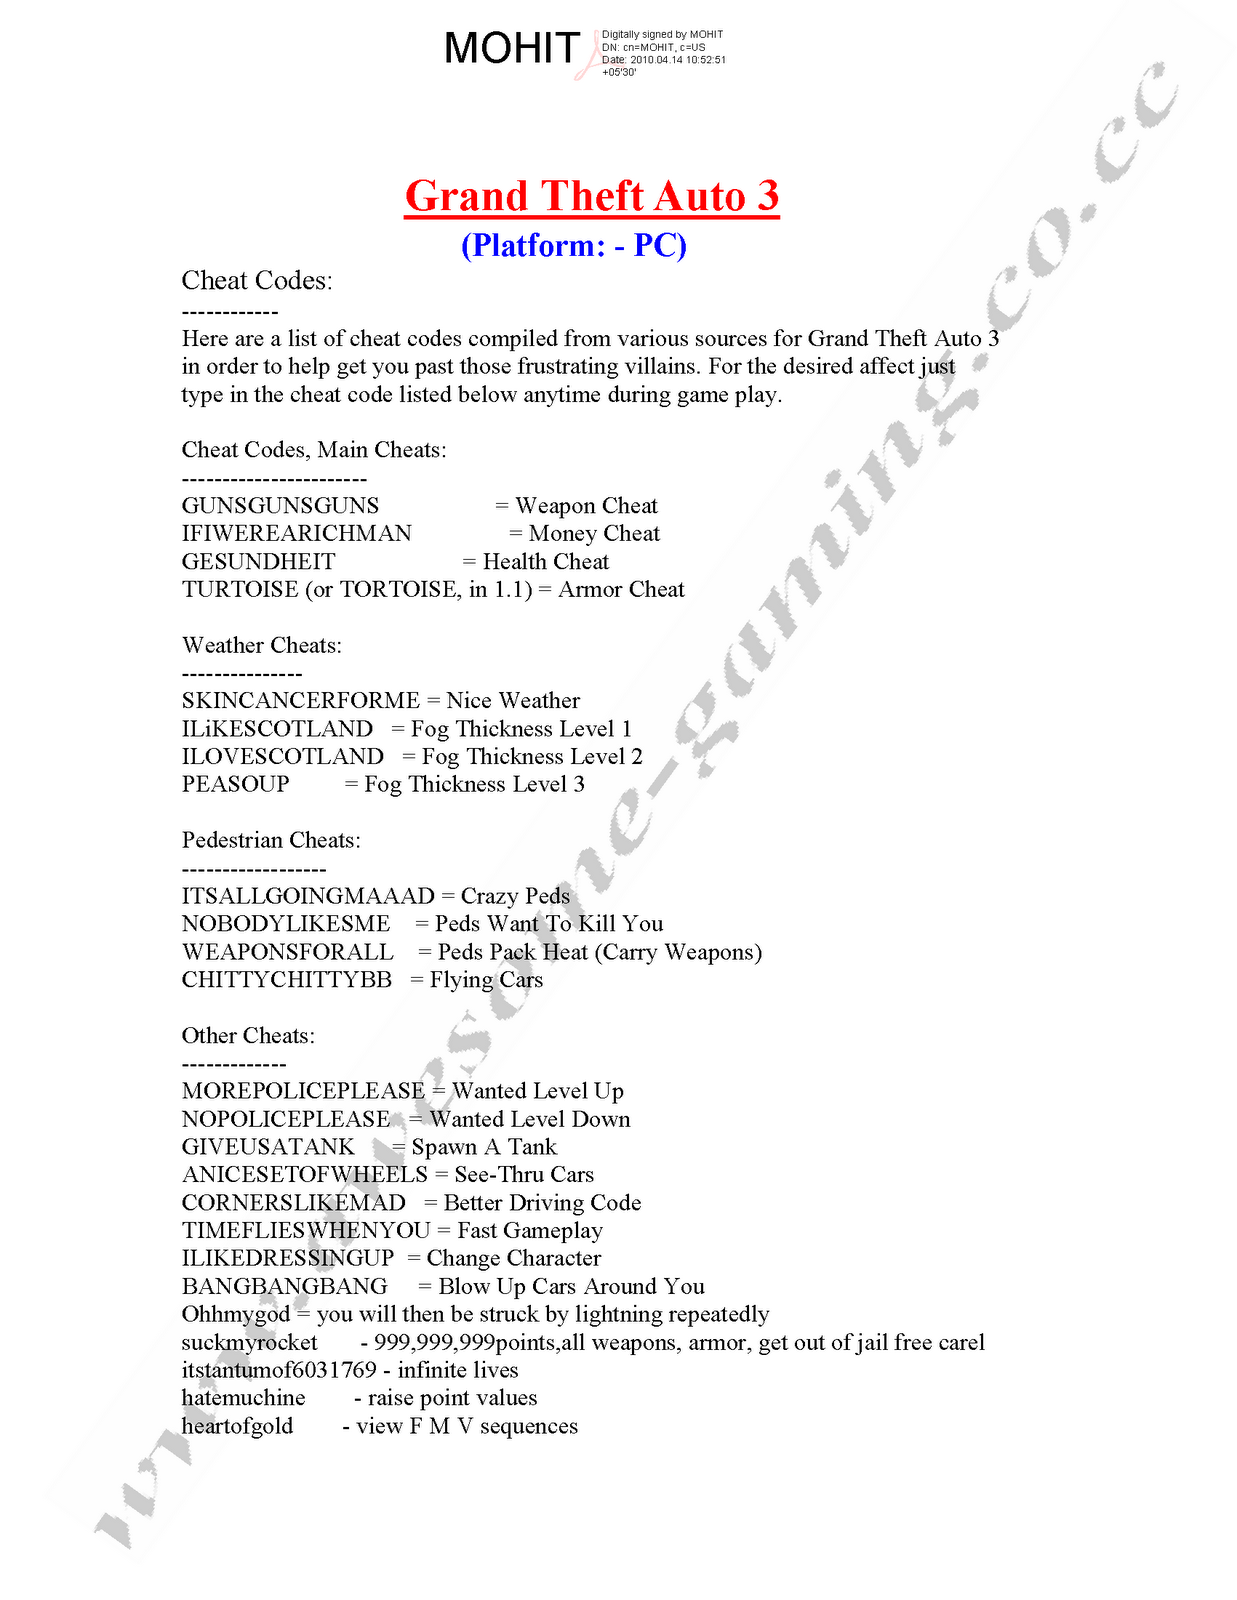 Grand Theft Auto 4 Cheat Codes